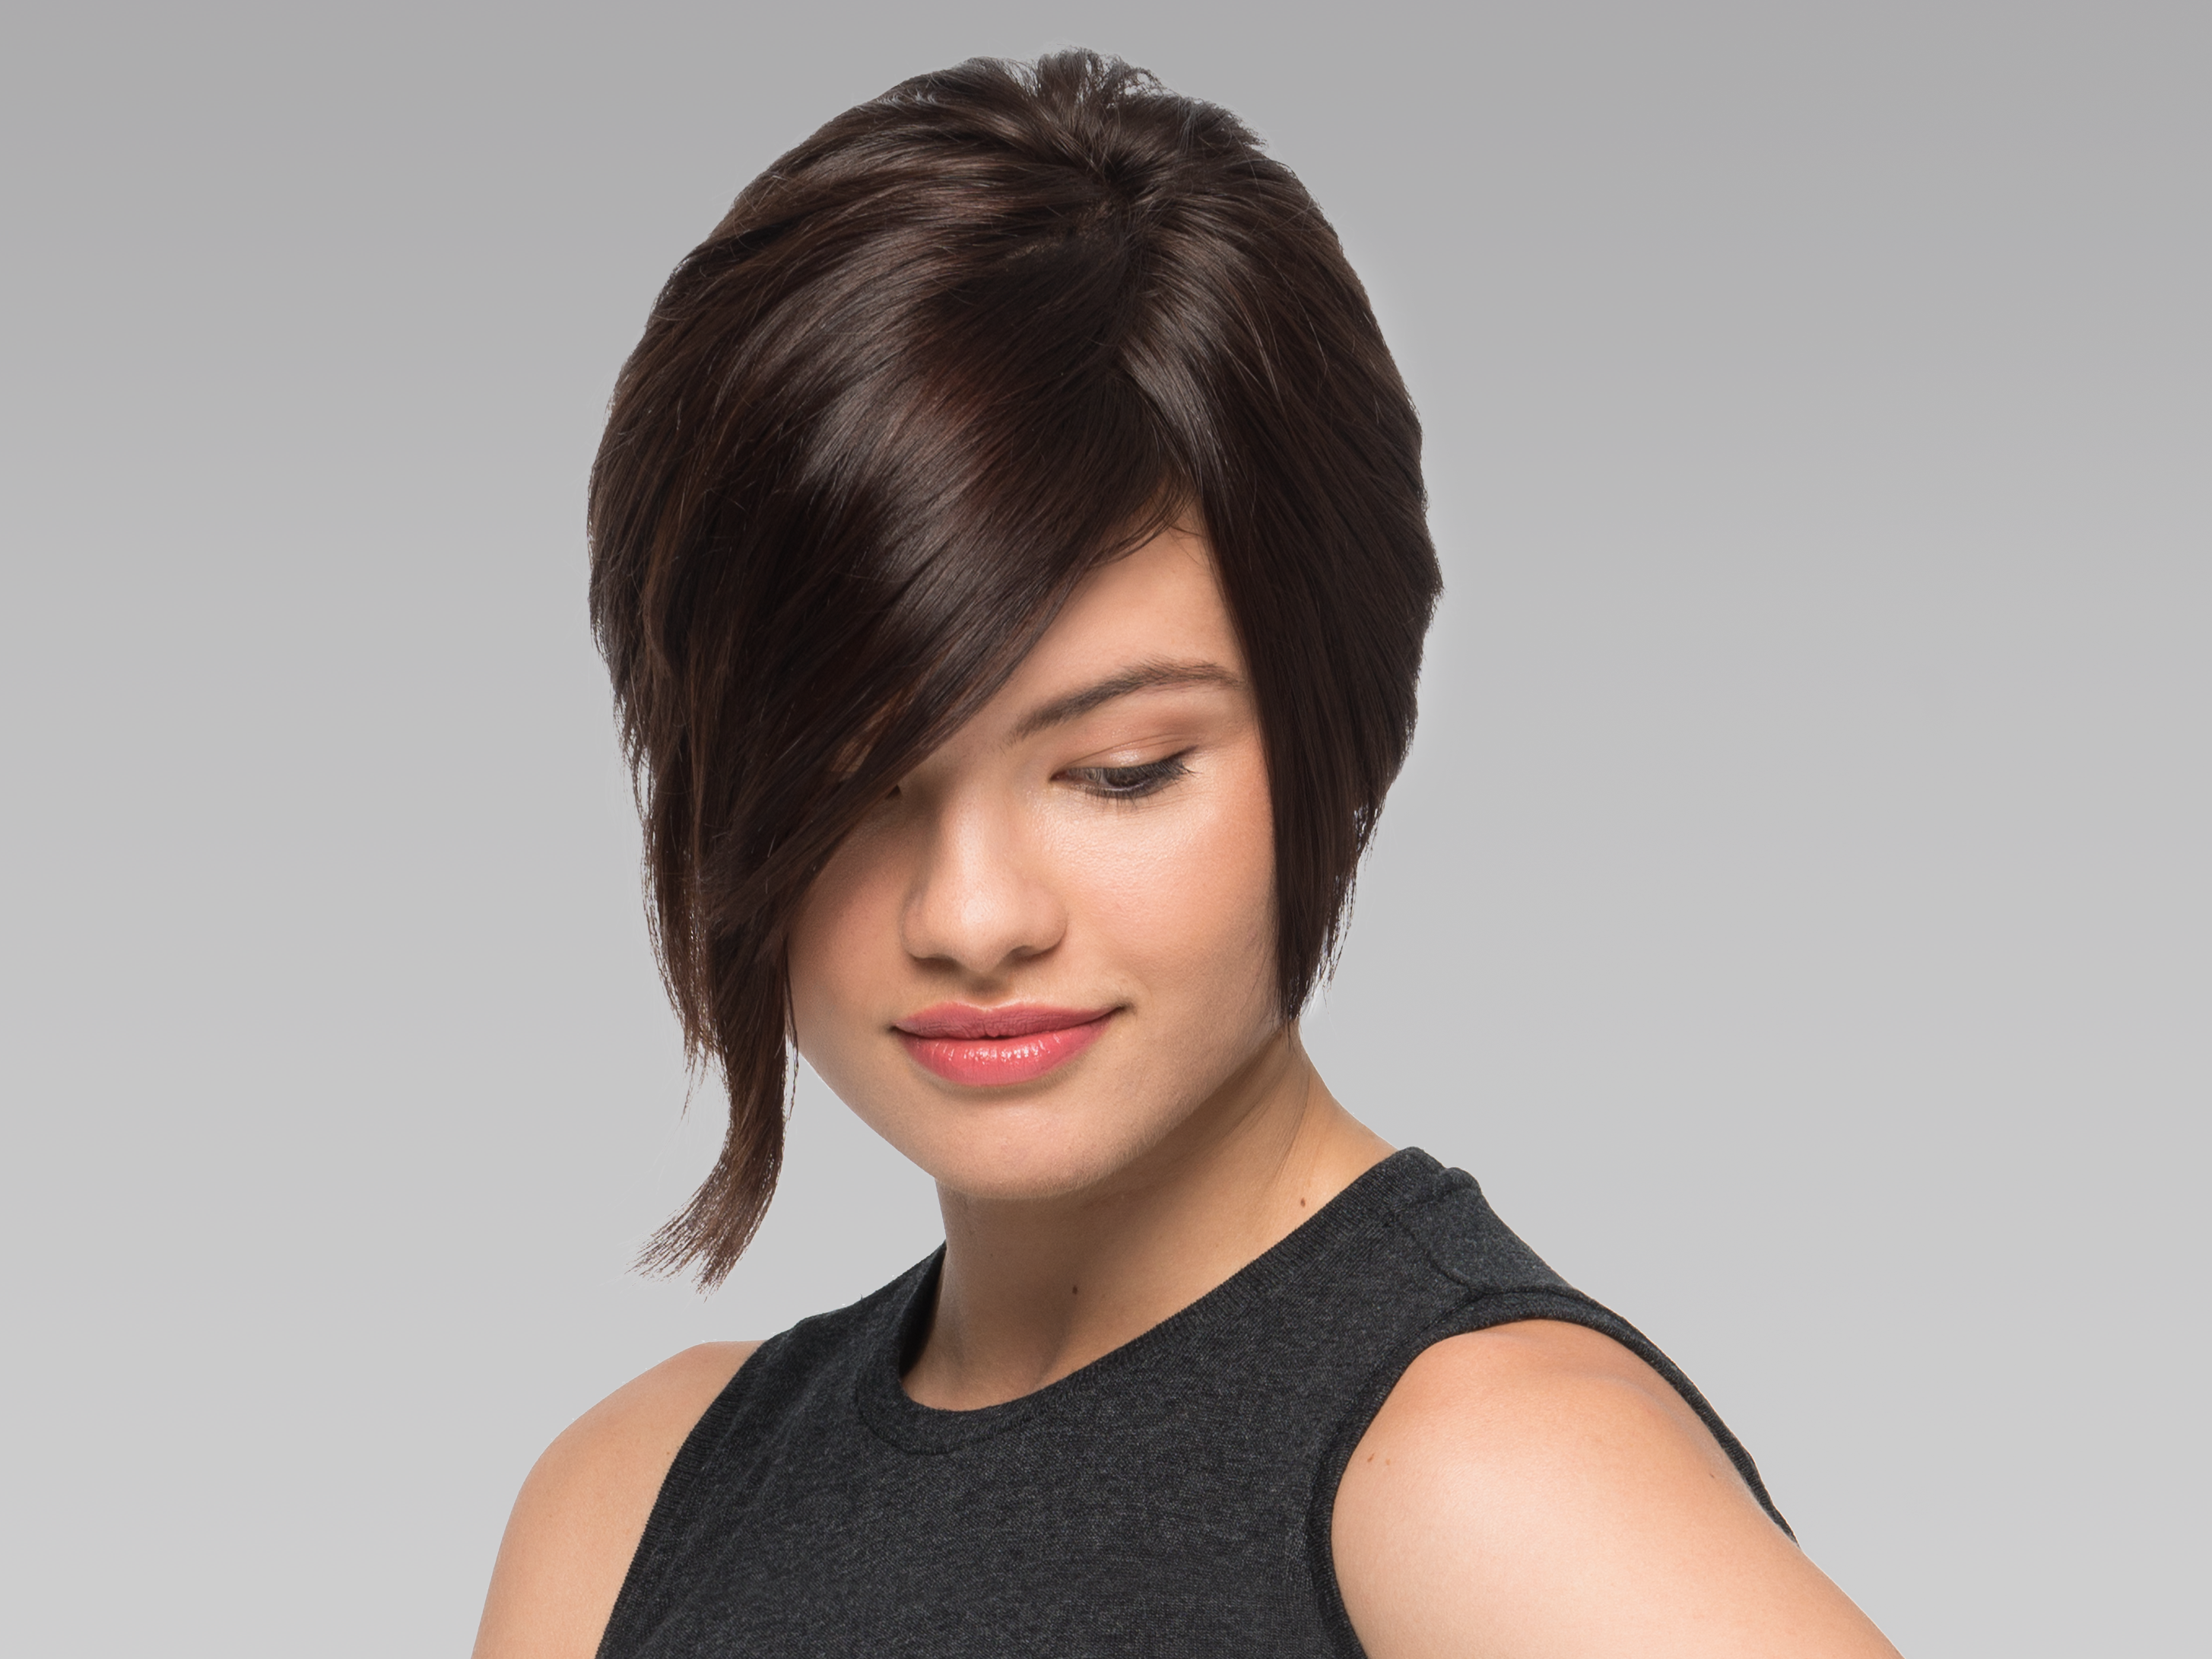 Women's Hairstyles | Supercuts